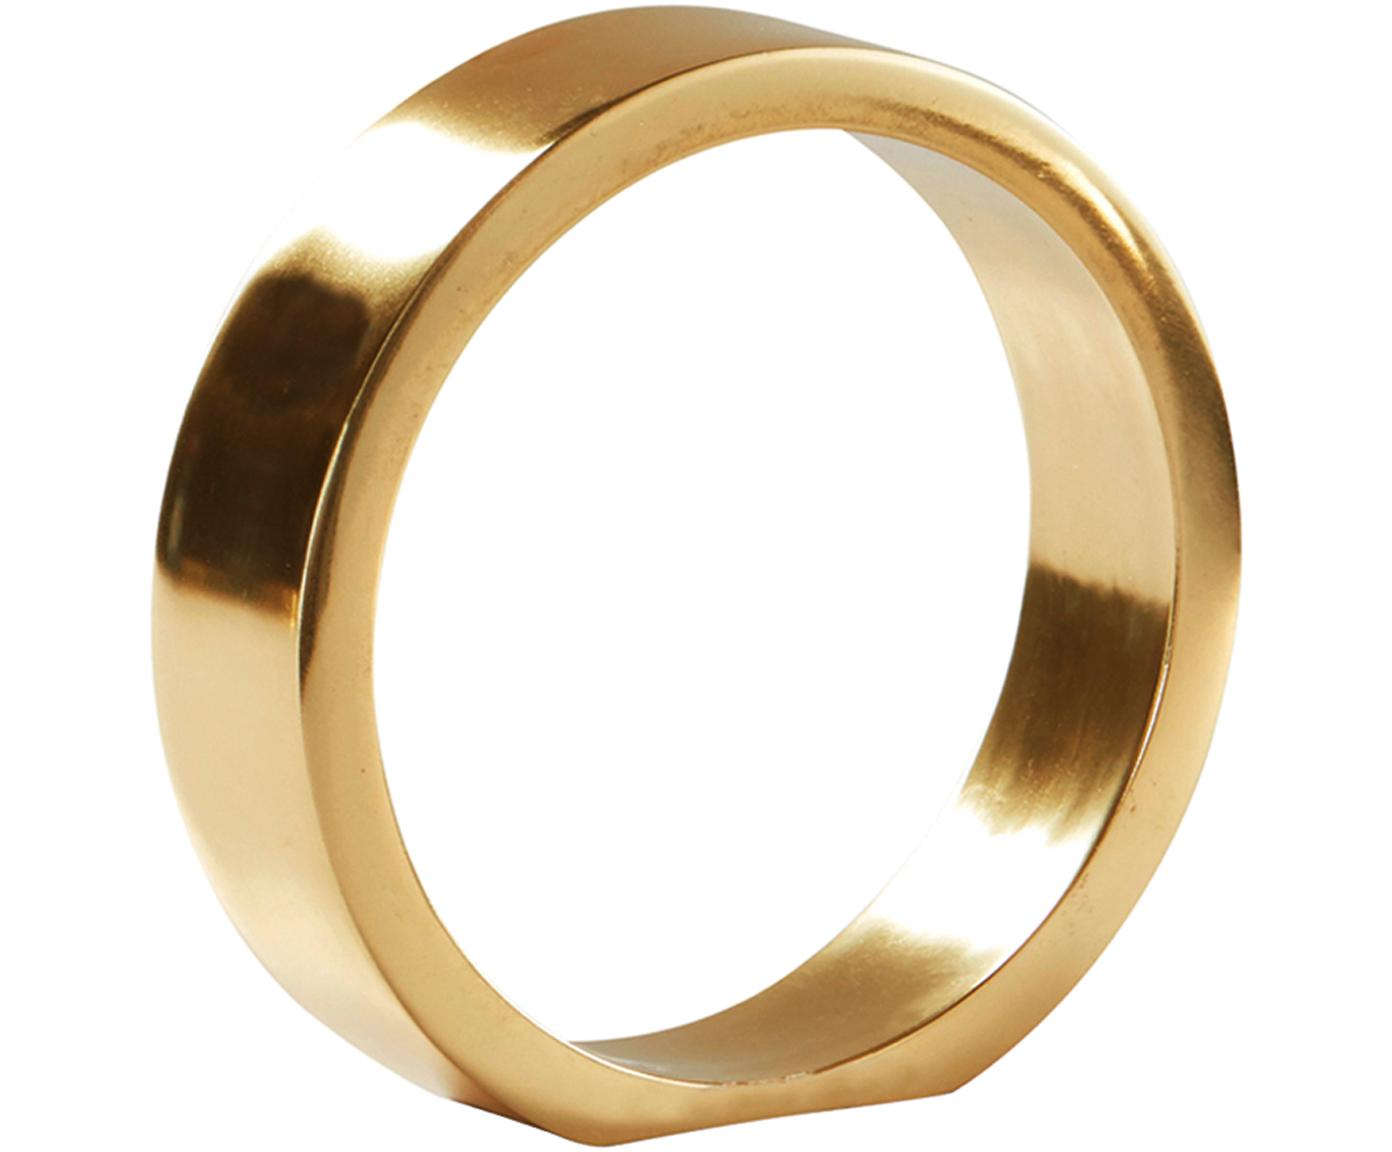 Deko-Objekt The Ring, Metall, beschichtet, Goldfarben, Ø 14 x H 14 cm